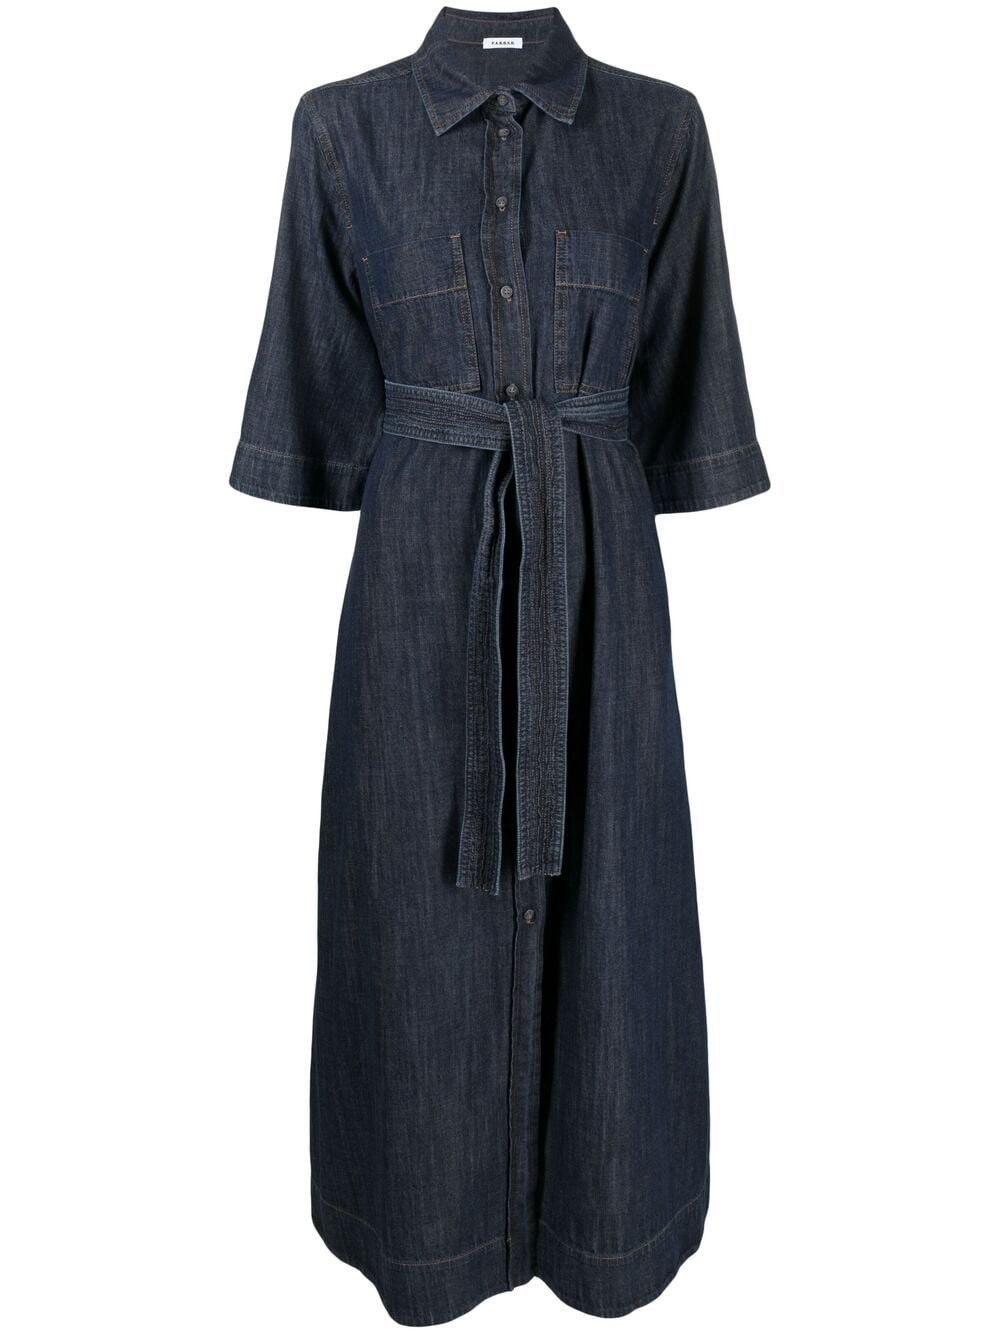 Long Denim Dress with Belt